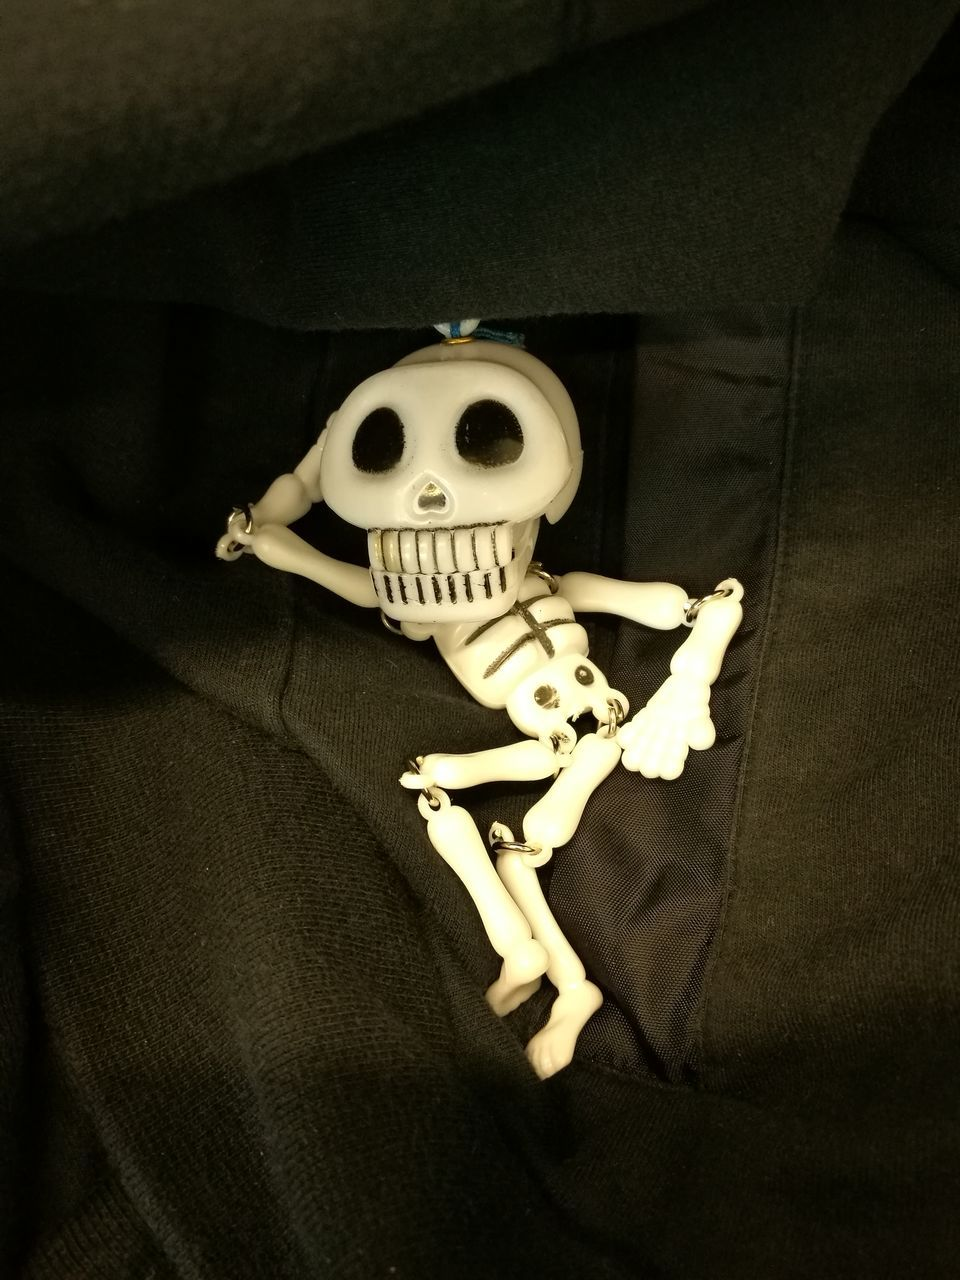 indoors, spooky, horror, bed, human bone, skeleton, night, stuffed toy, halloween, close-up, bedroom, one person